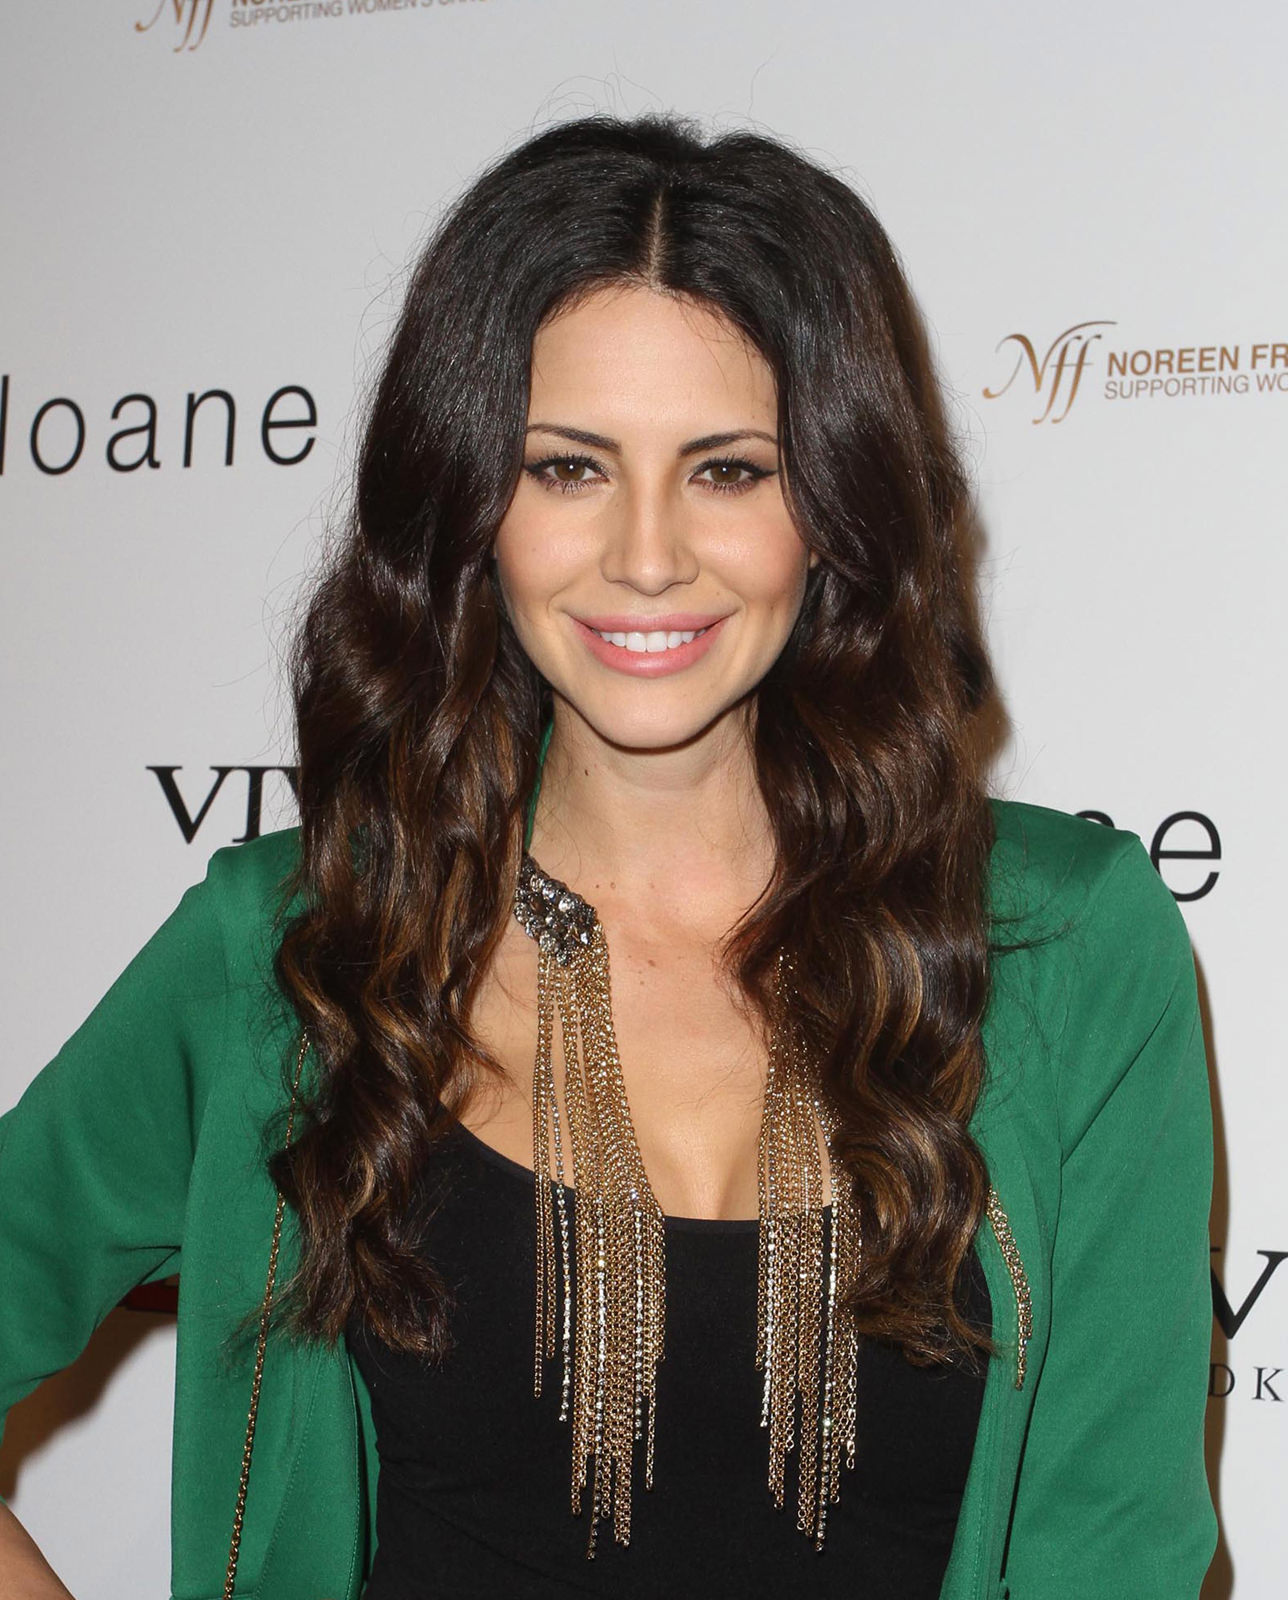 Hope Dworaczyk Photo Gallery